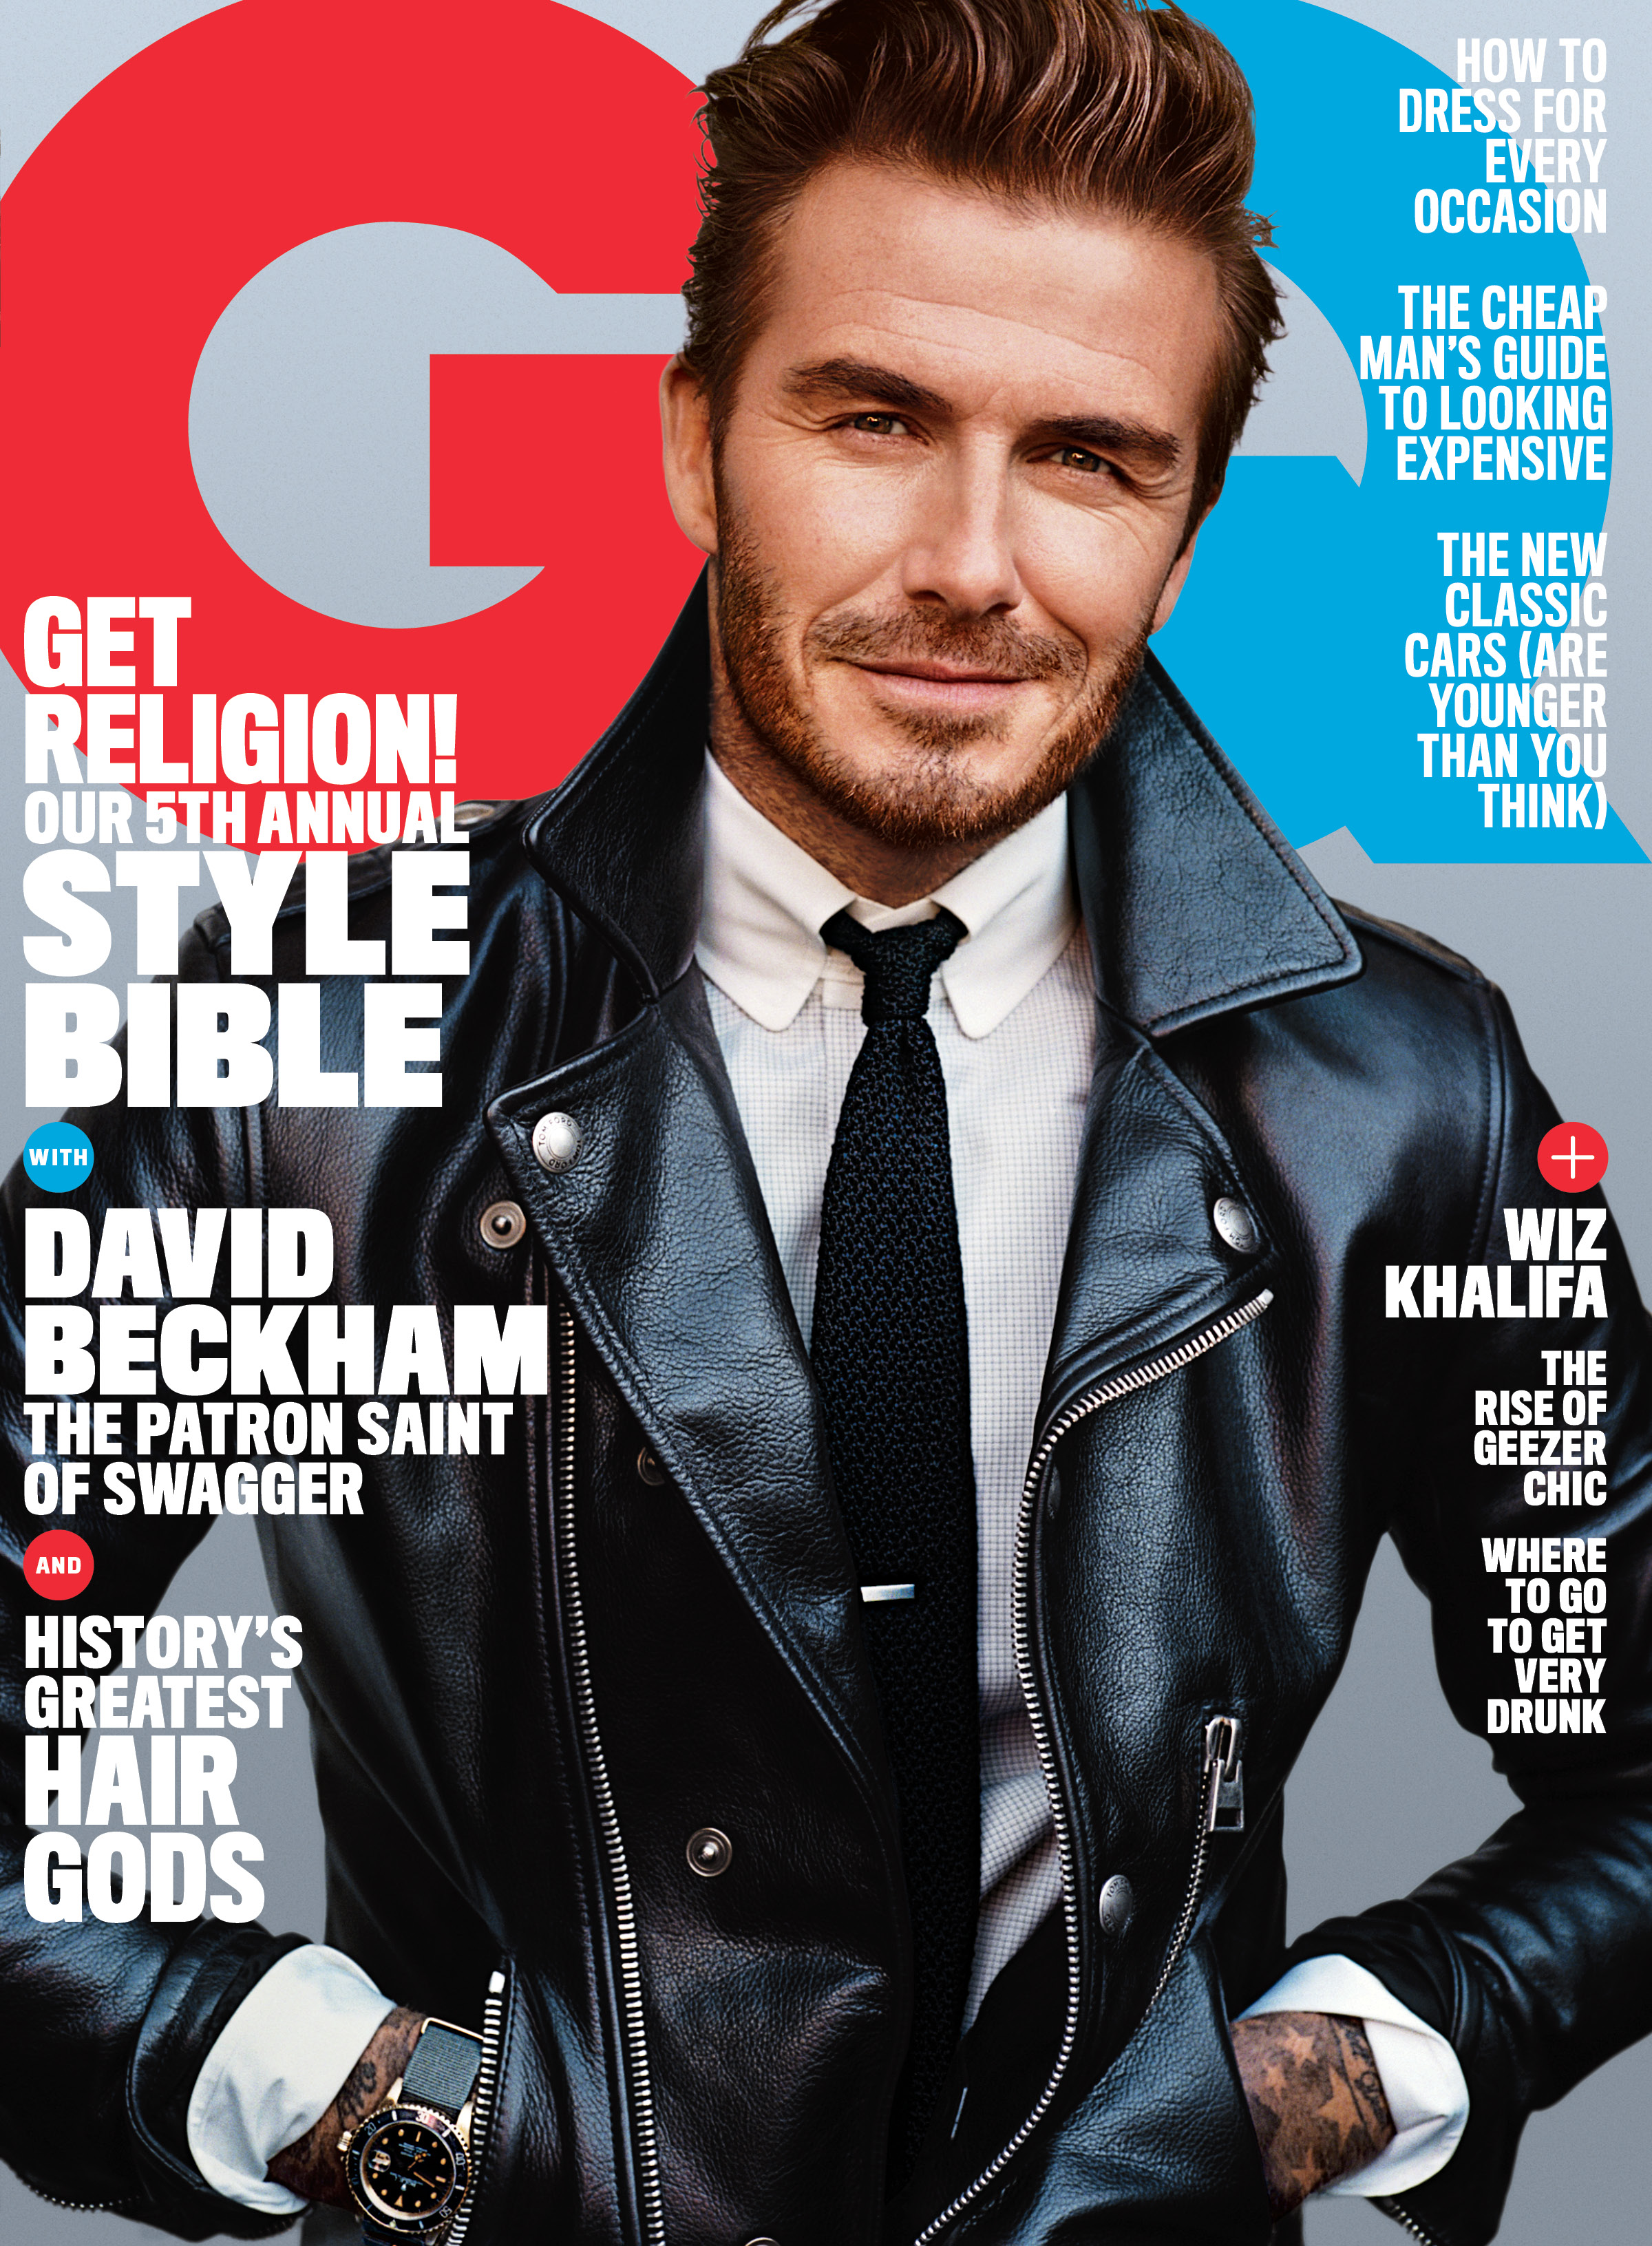 GQ's April cover featuring David Beckham